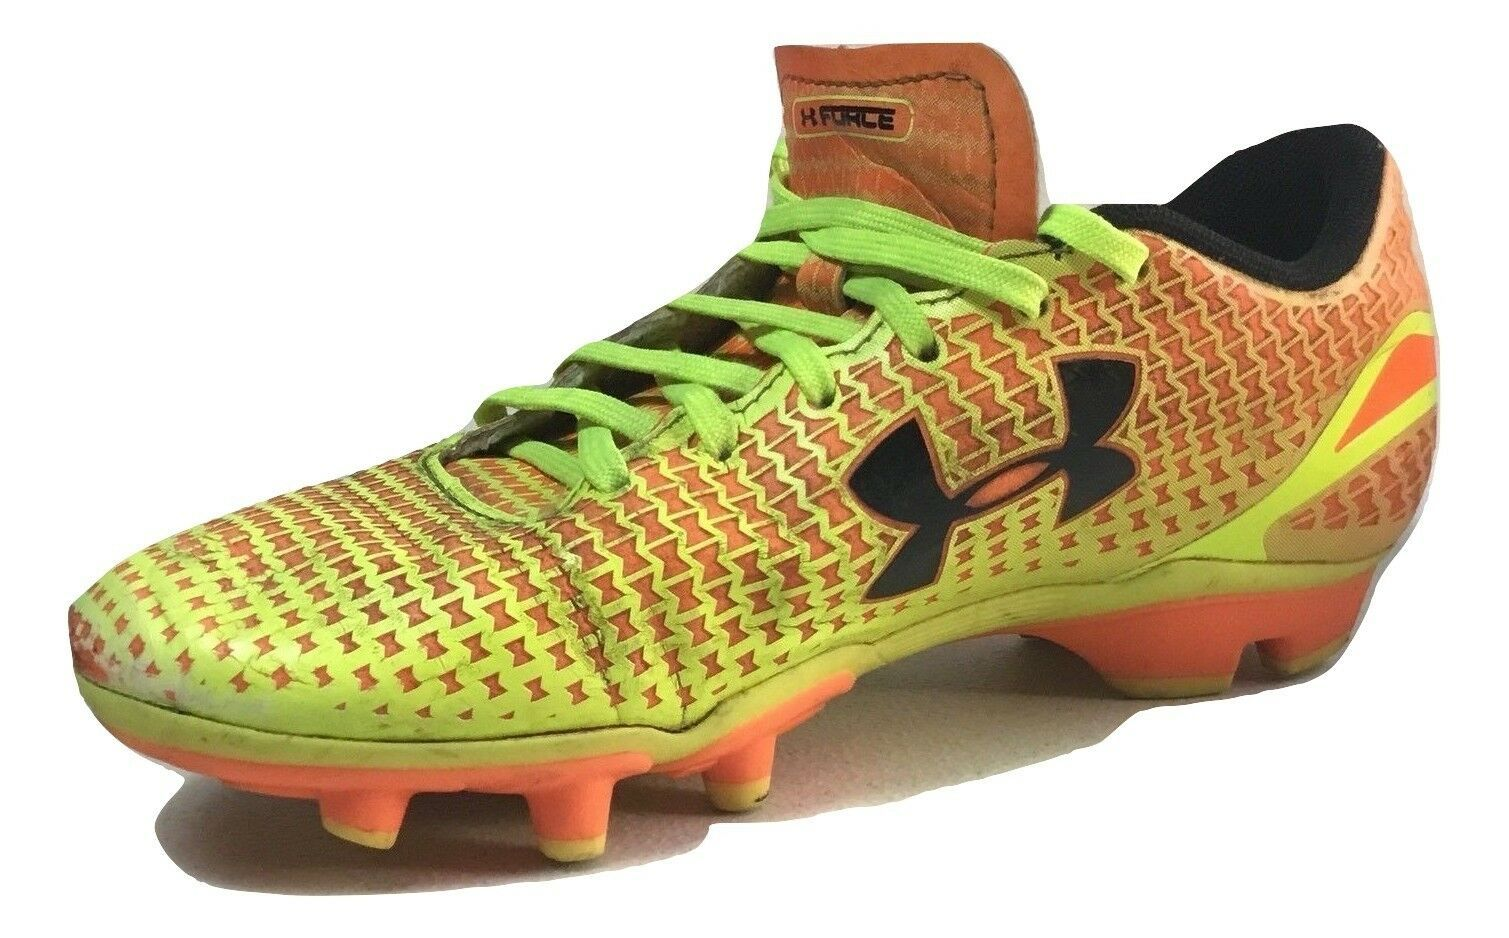 3716ed572 Under Armour Force Soccer Cleats Orange and 50 similar items